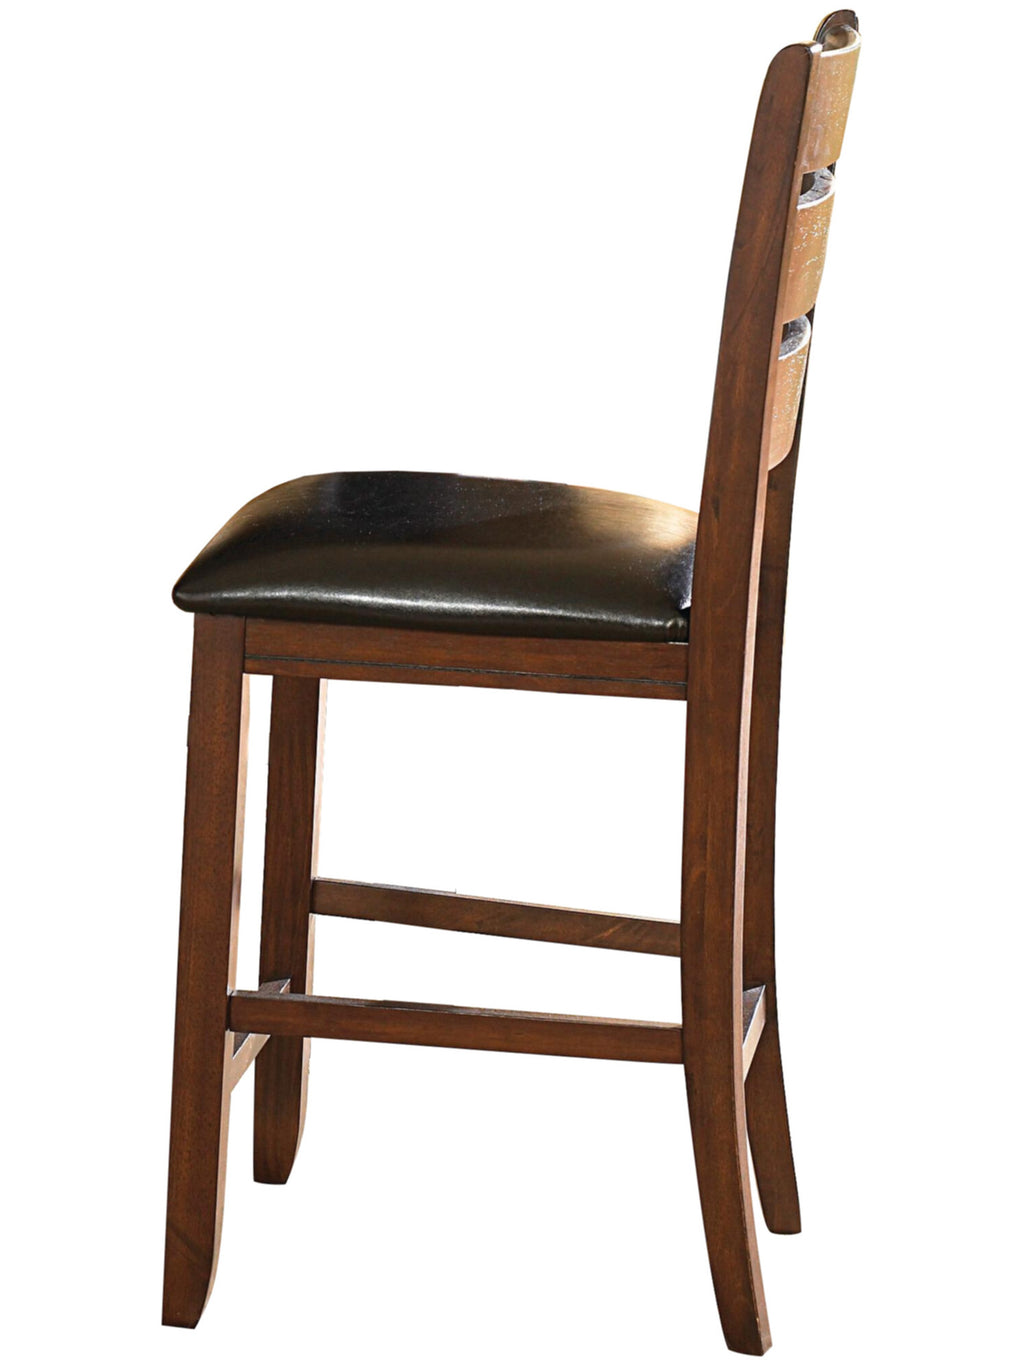 Homelegance Ameillia Counter Height Chair in Dark Oak